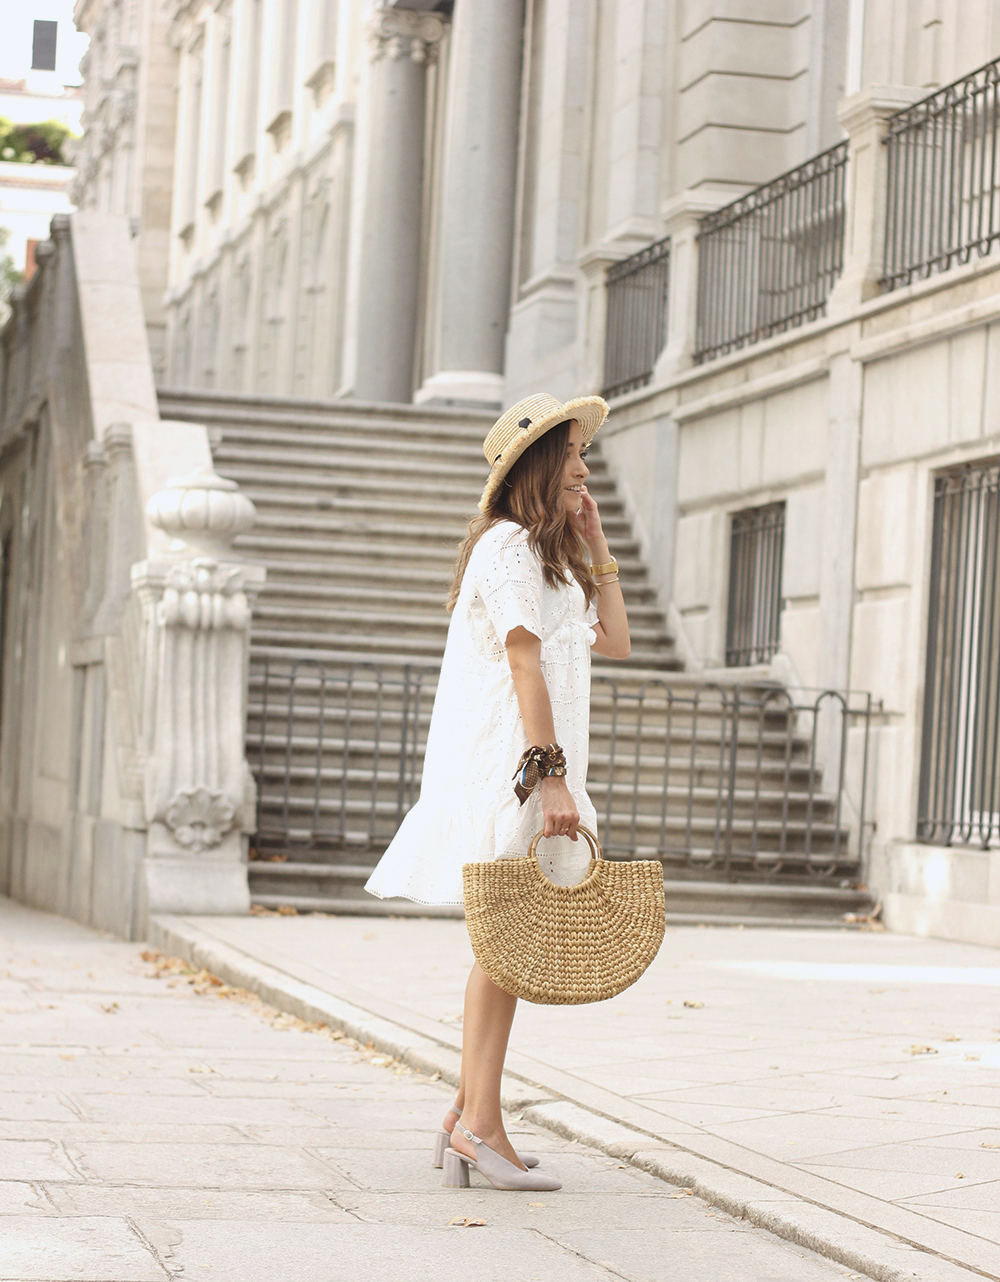 White summer dress canotier street style outfit 20197